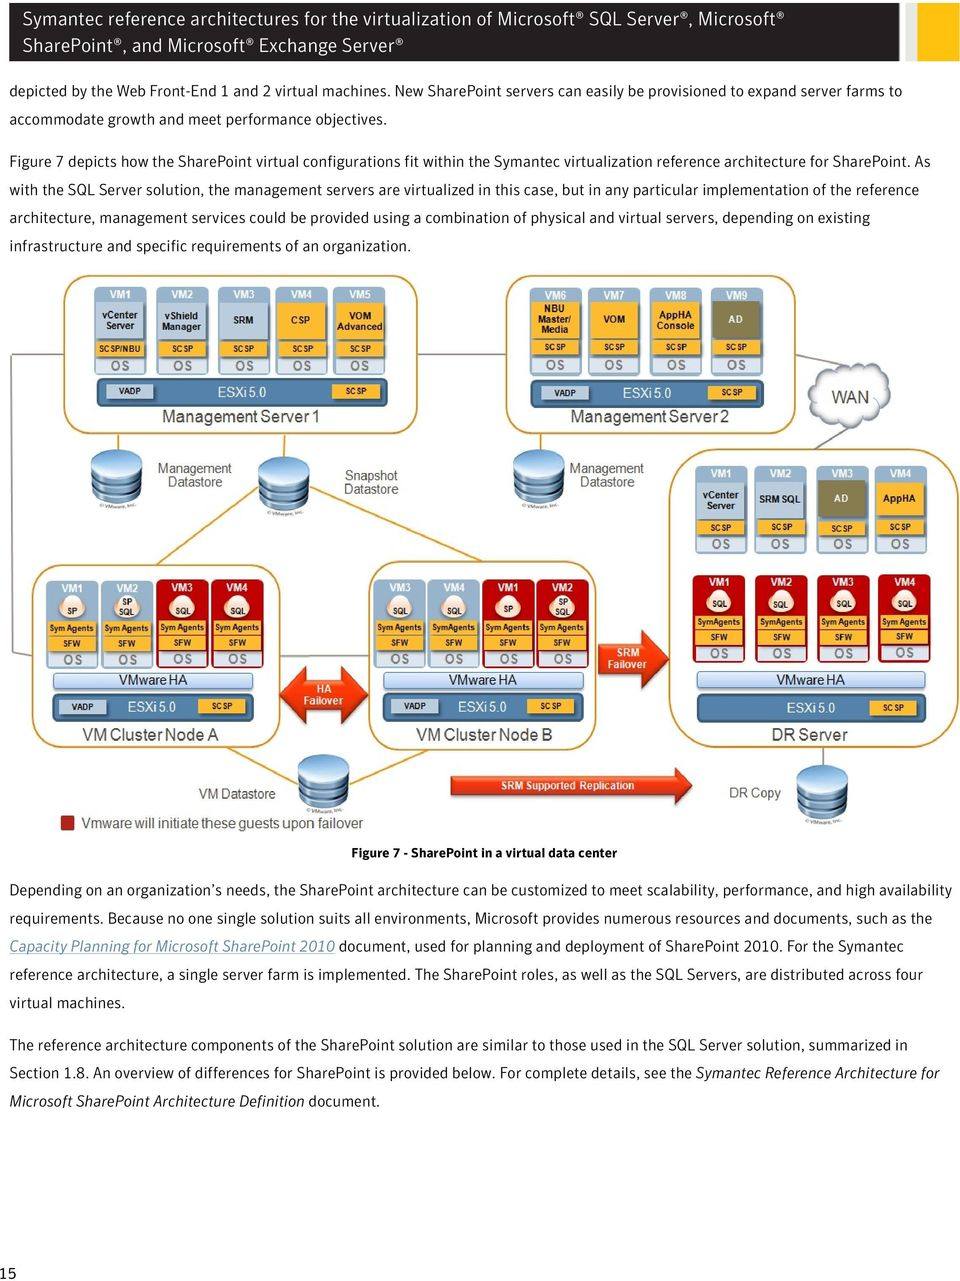 As with the SQL Server solution, the management servers are virtualized in this case, but in any particular implementation of the reference architecture, management services could be provided using a